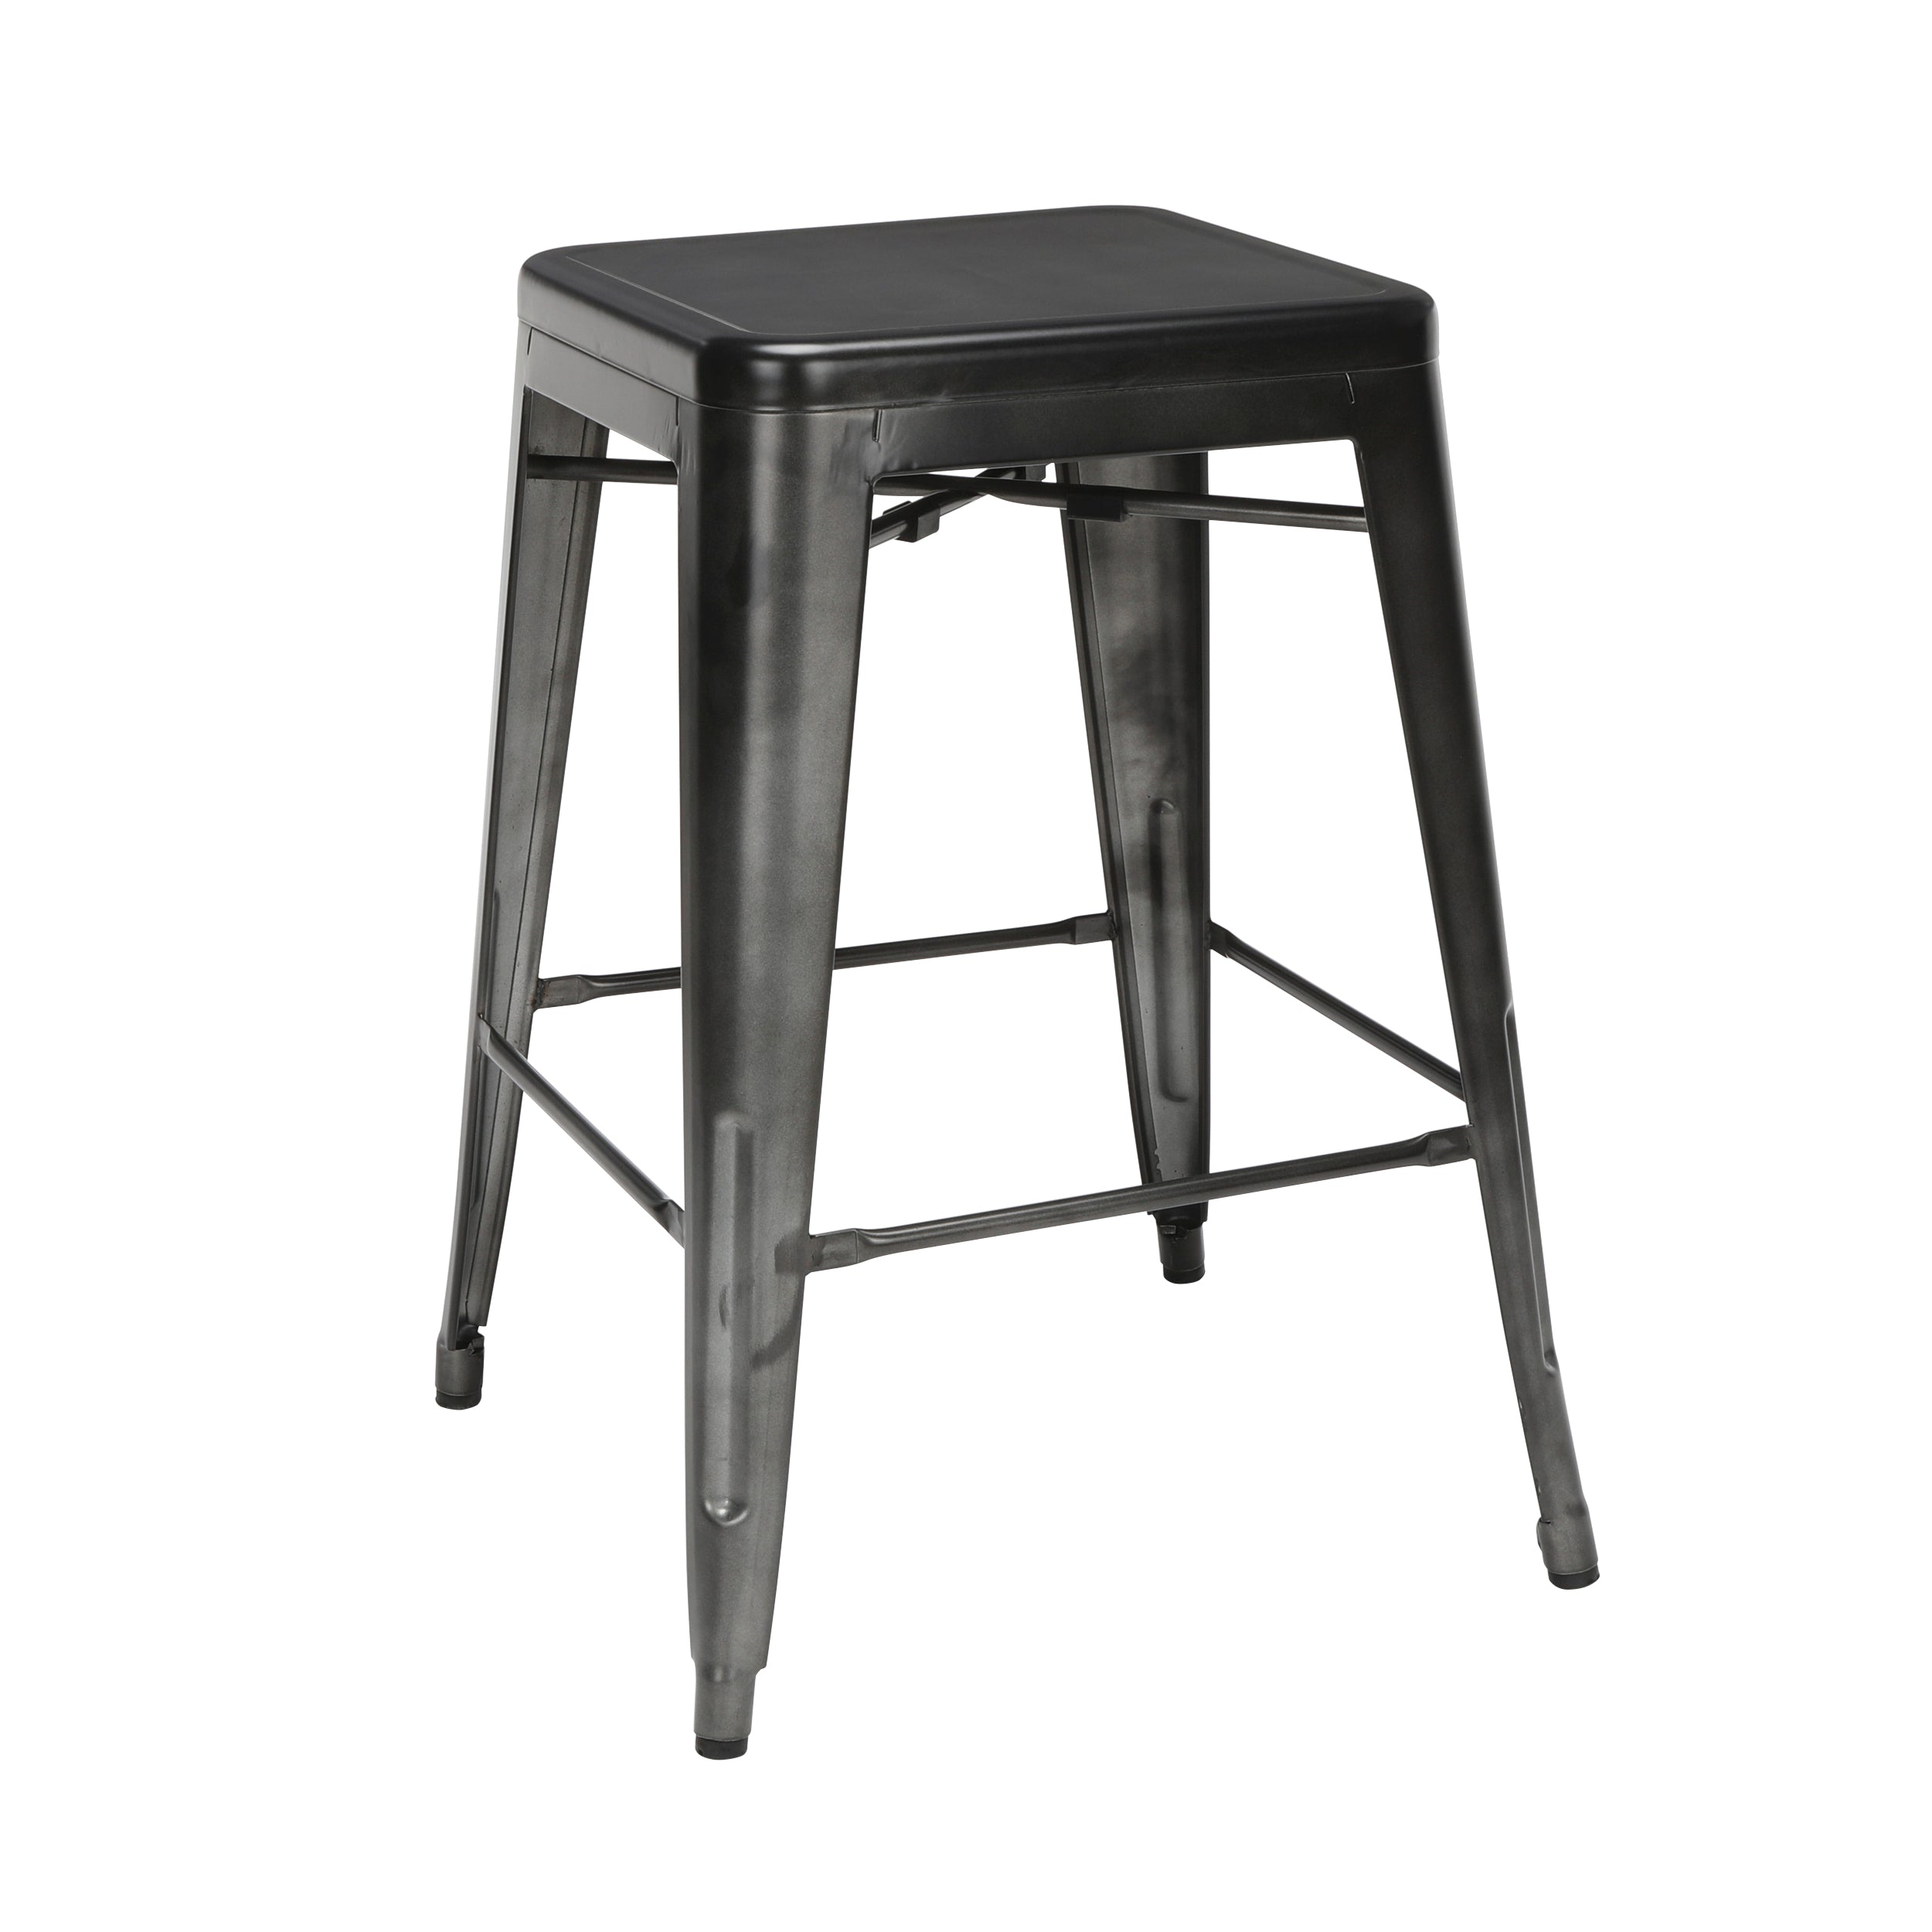 "26"" Backless Metal Stool Steel Bar Stool with Oversized Seats-Gunmetal"